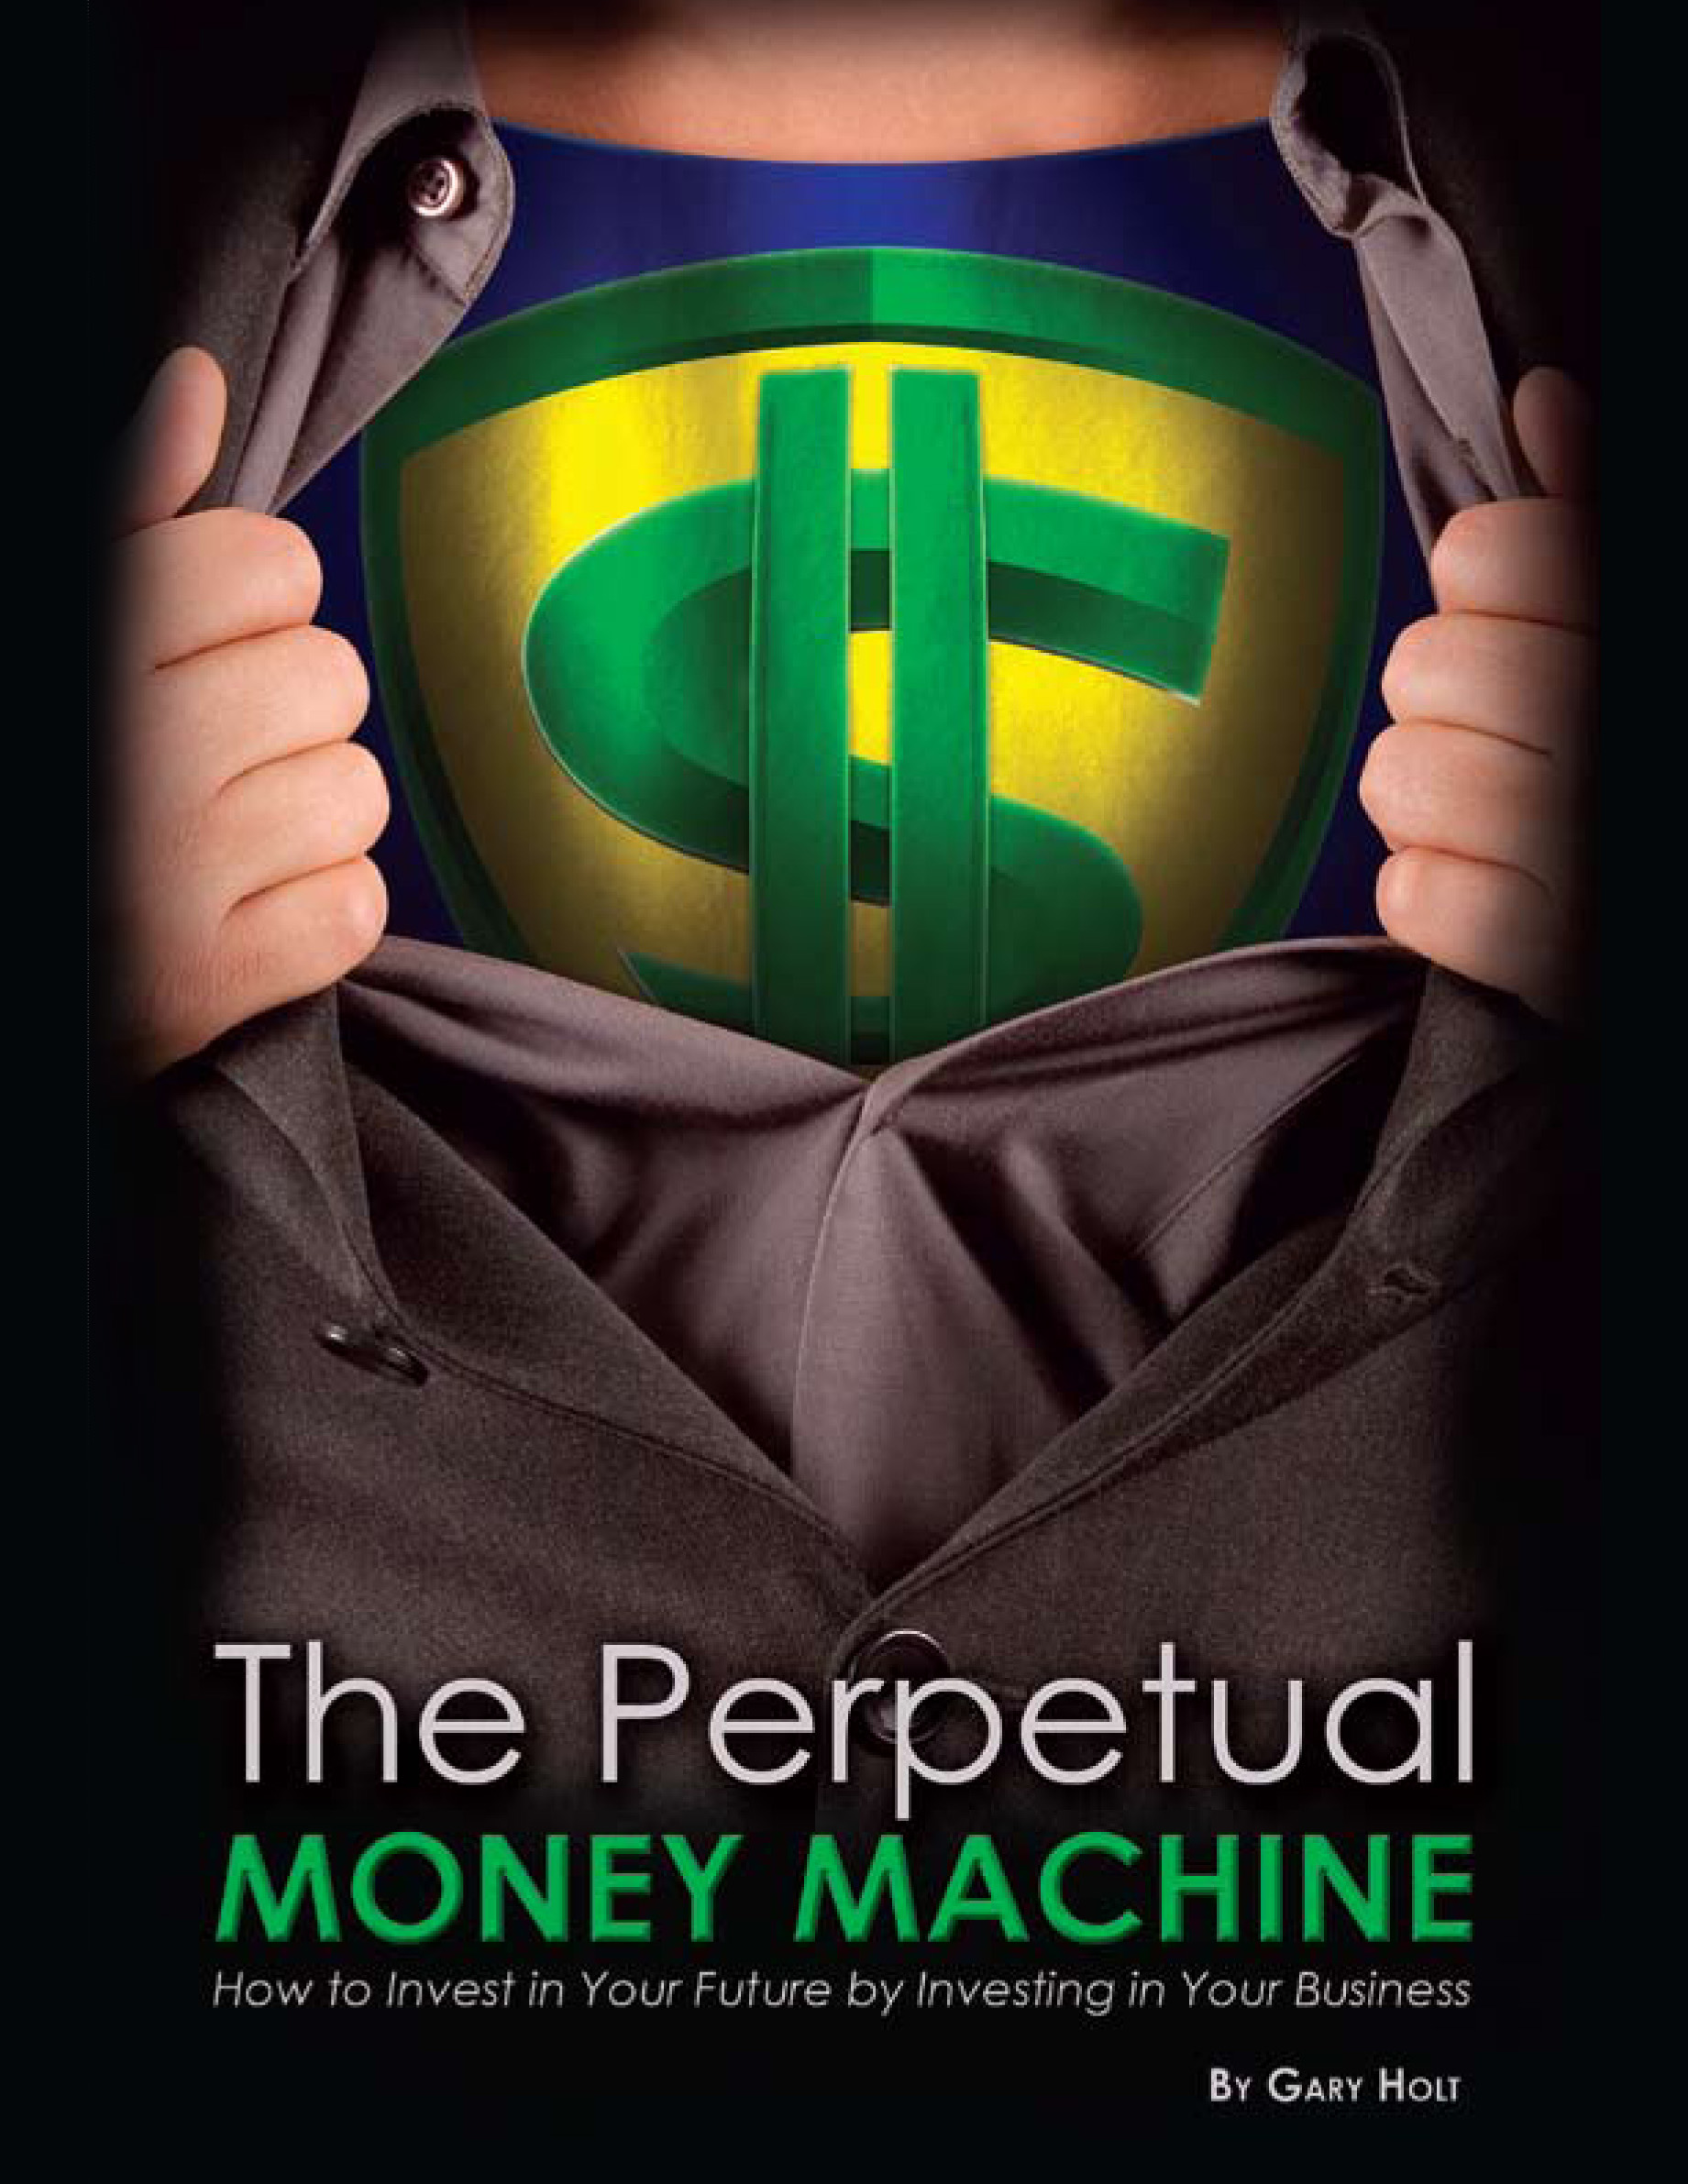 PerpetualMoneyMachine